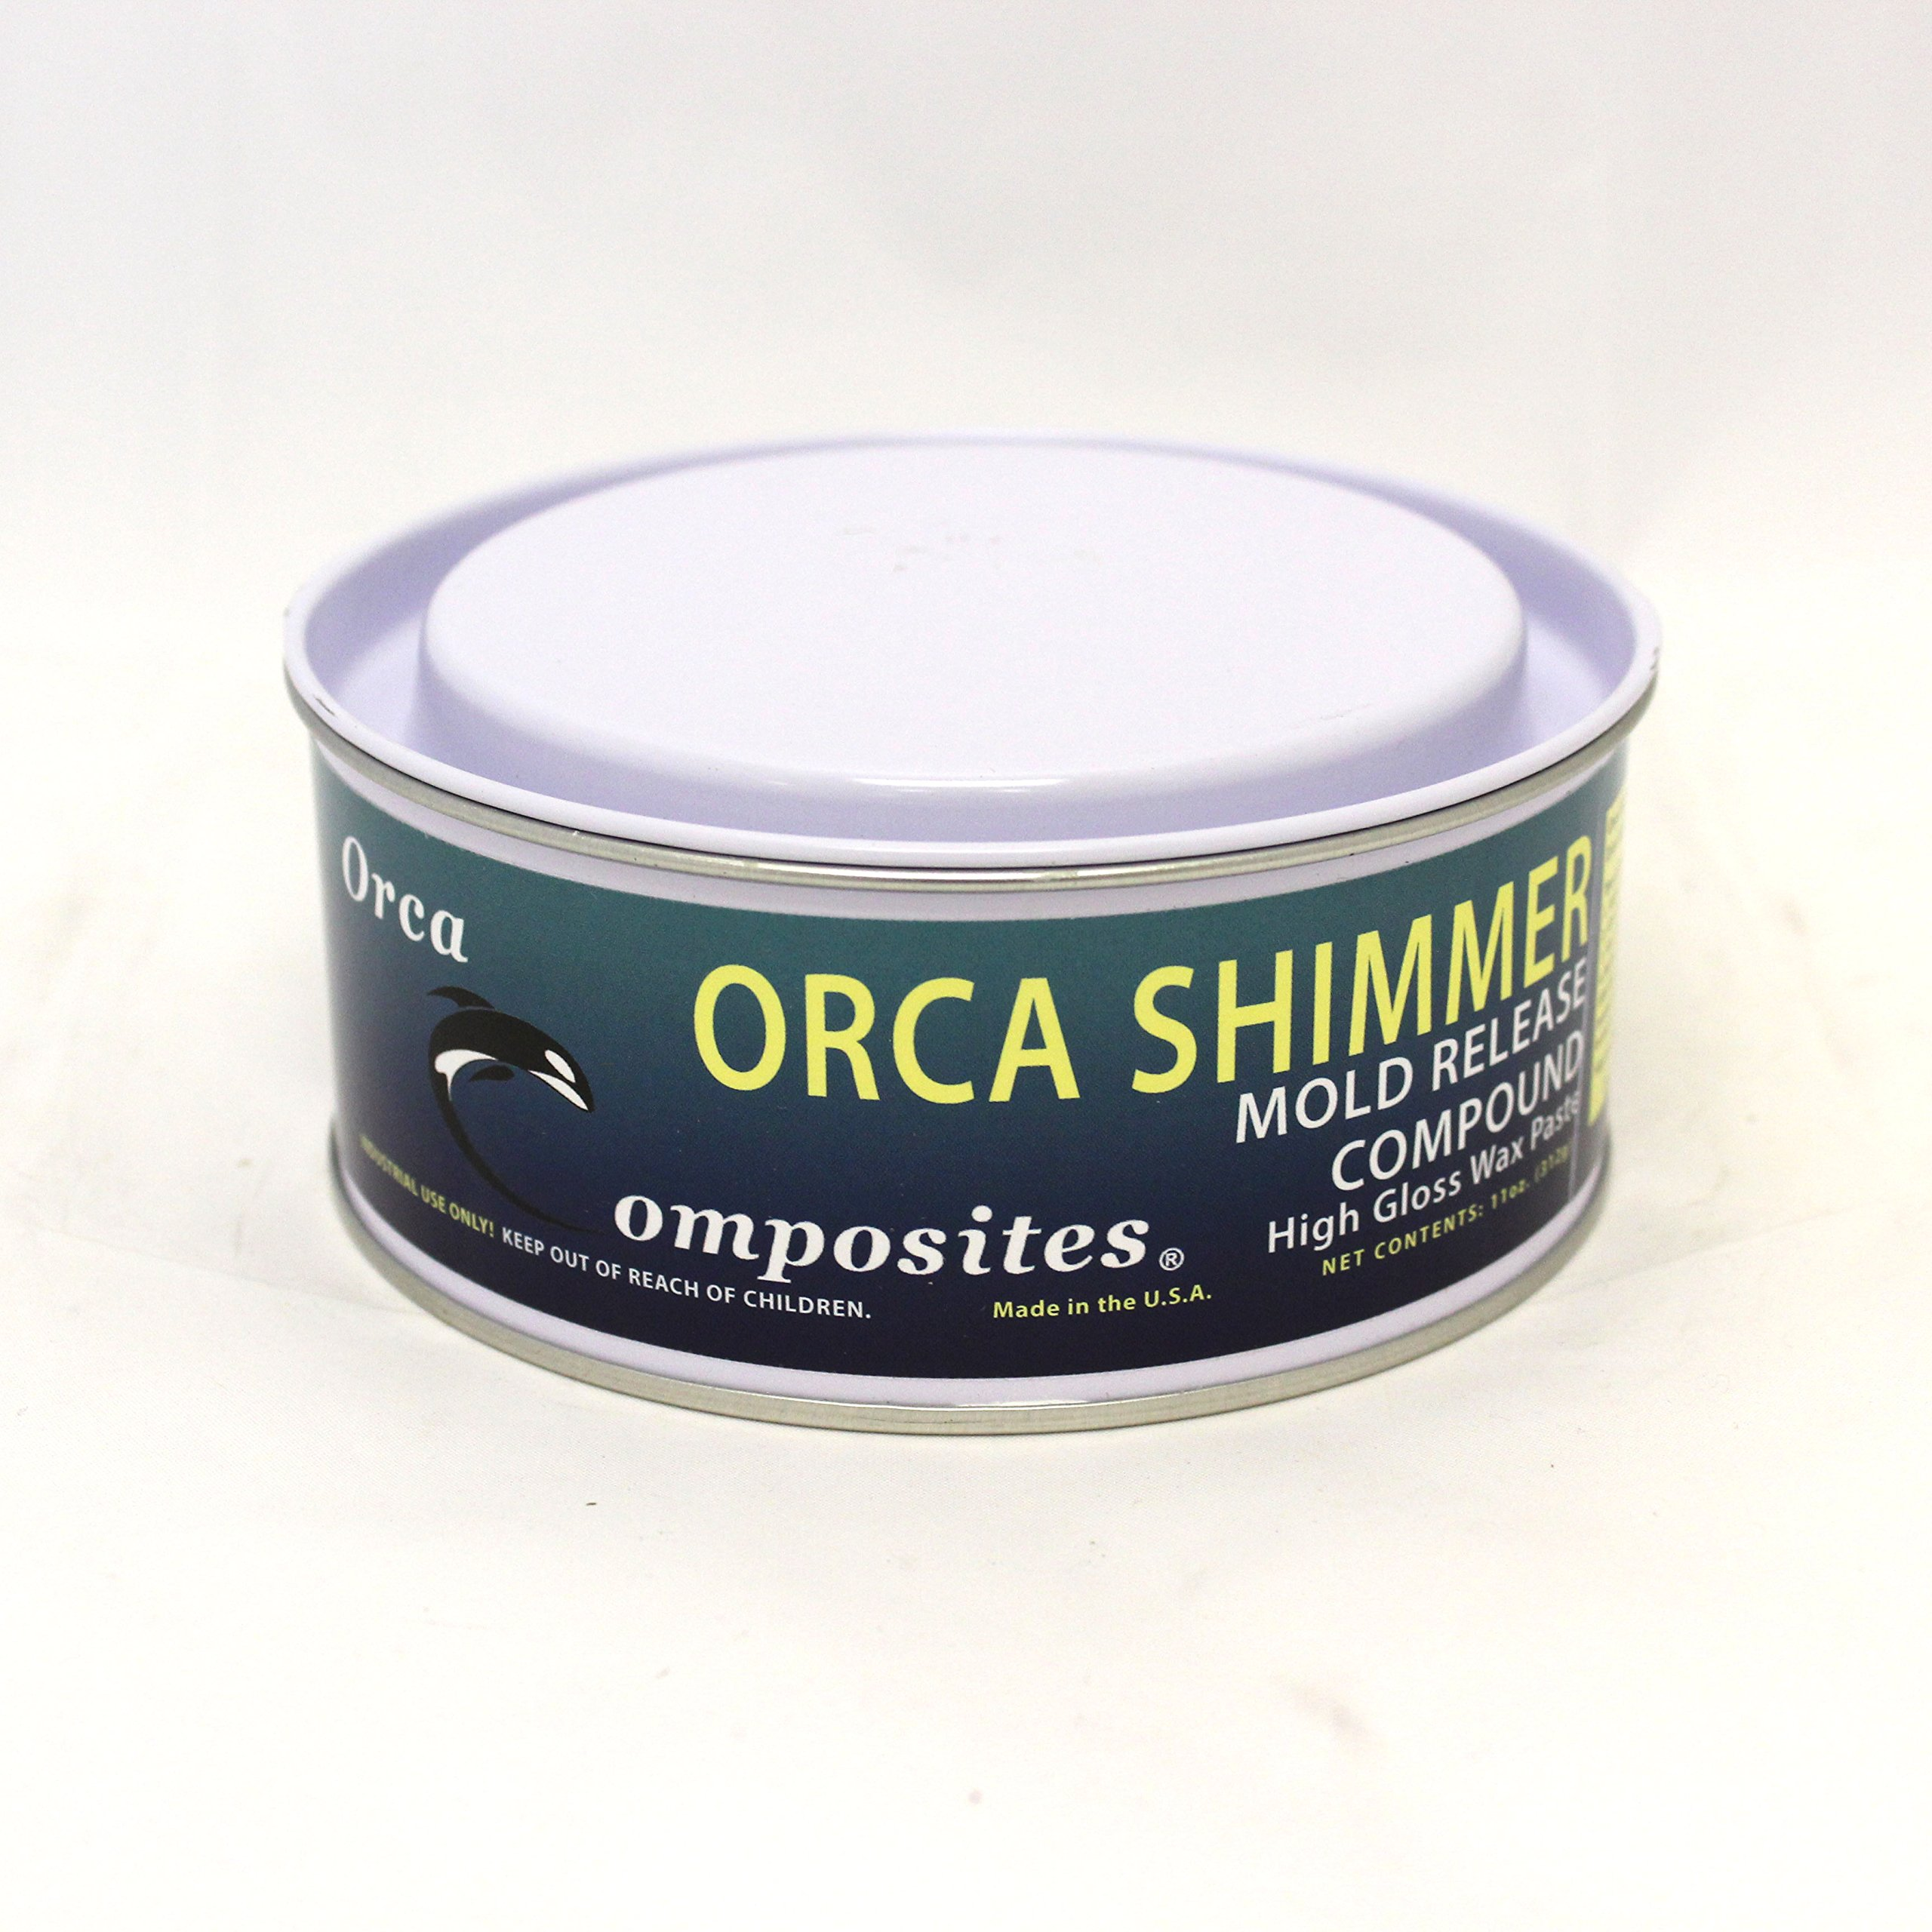 Orca Shimmer Mold Release Compound High Gloss Paste Wax